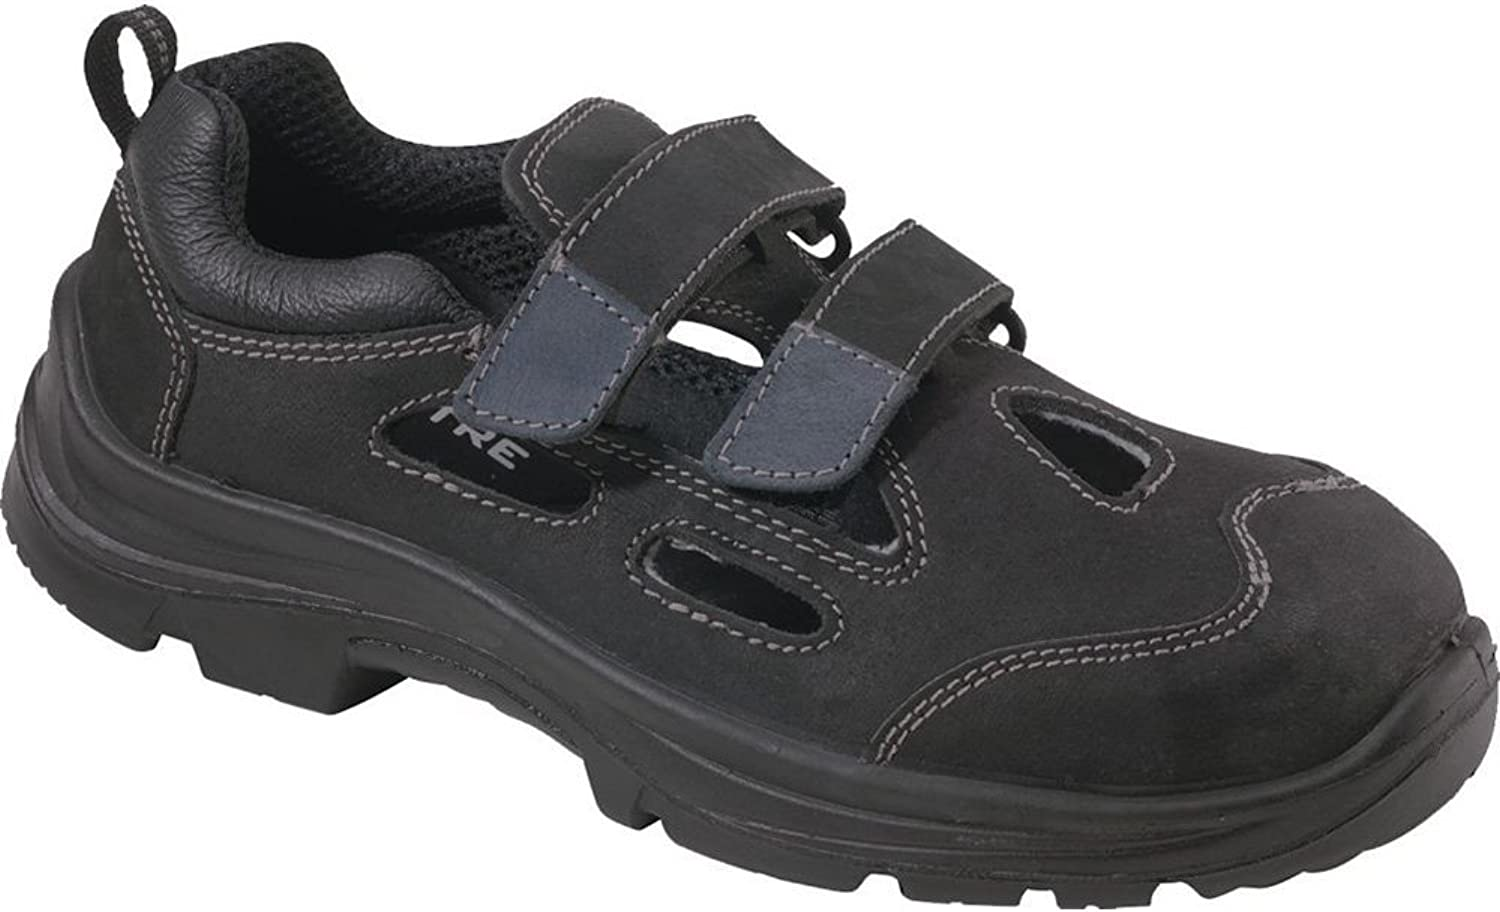 Lemaitre 92841 Size 41 2X-Large Width S1P Andy Fresh Safety shoes